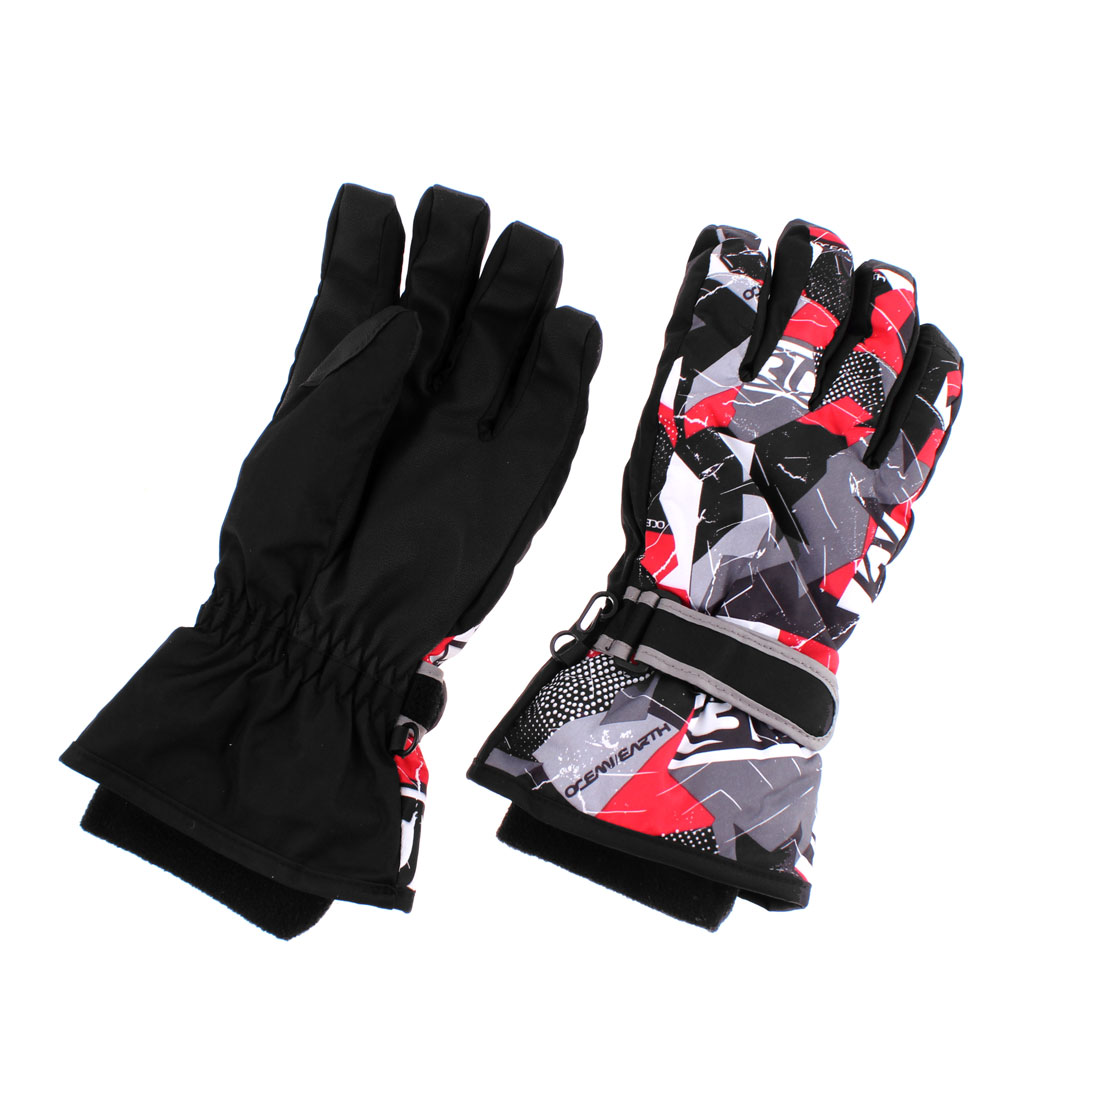 Winter Skiing Snowboard Ski Full Finger Gloves Black XS Pair for Kids